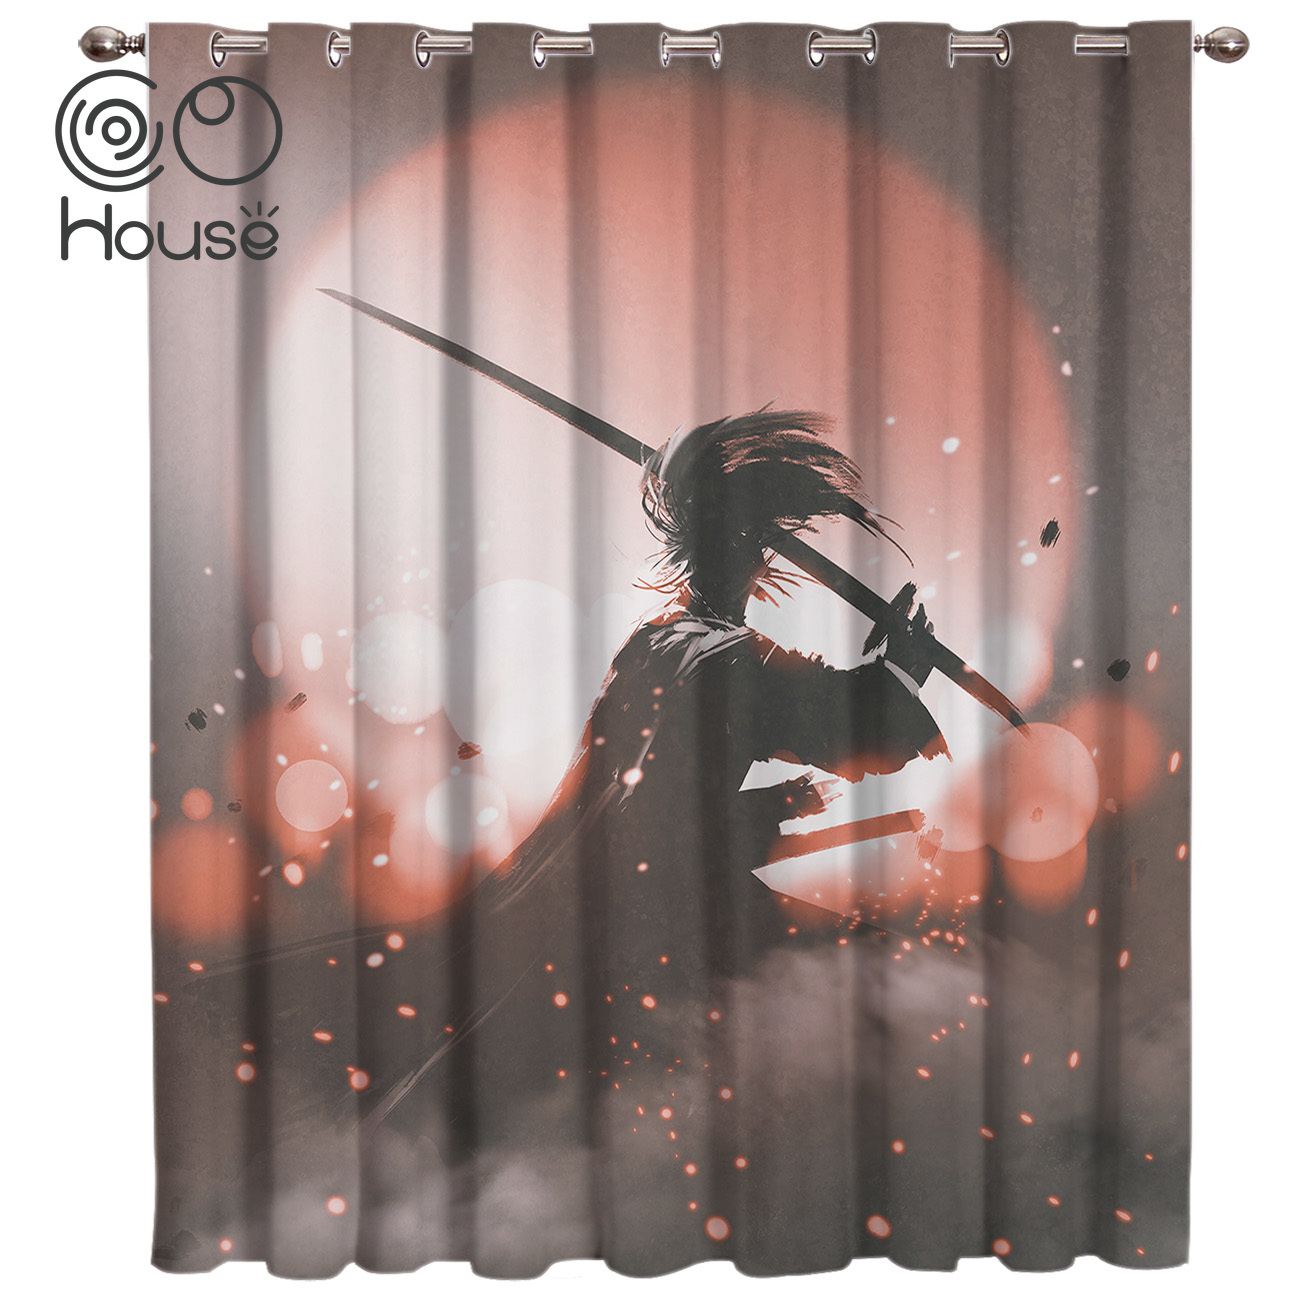 COCOHouse Japanese Anime Character Bushido Window Treatments Curtains Valance Curtain Lights Living Room Decor Bathroom image